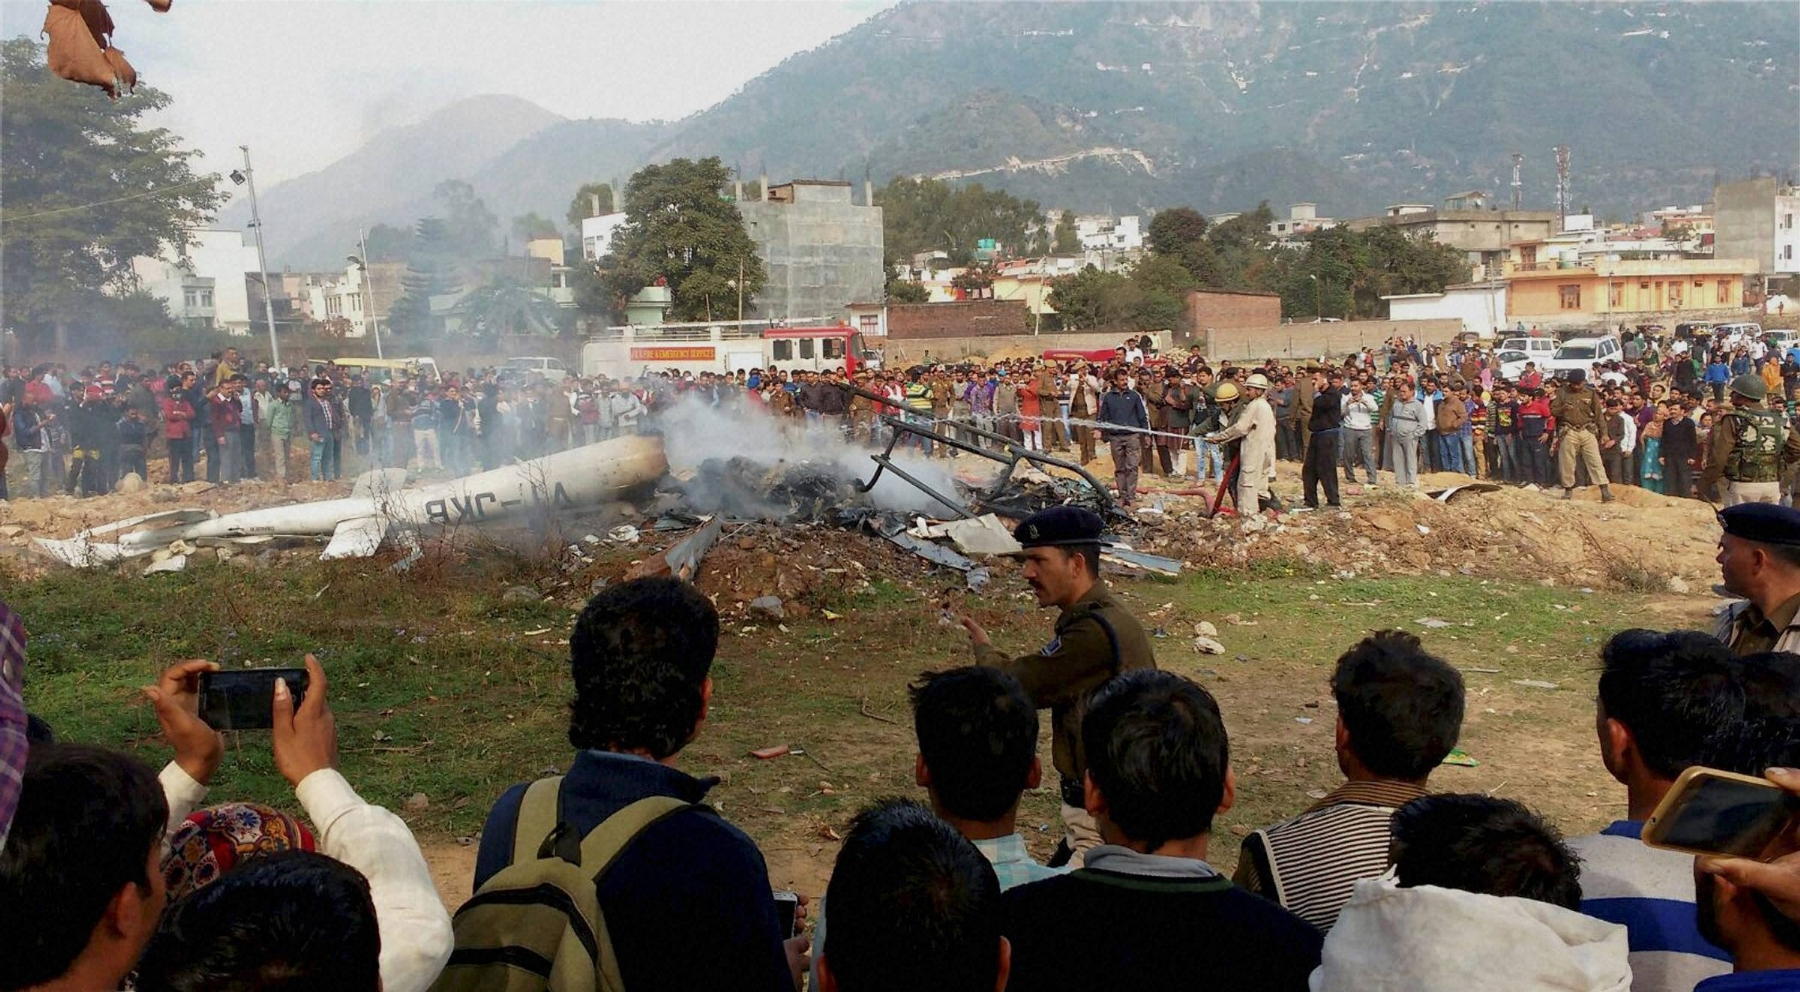 7 killed in Katra chopper crash